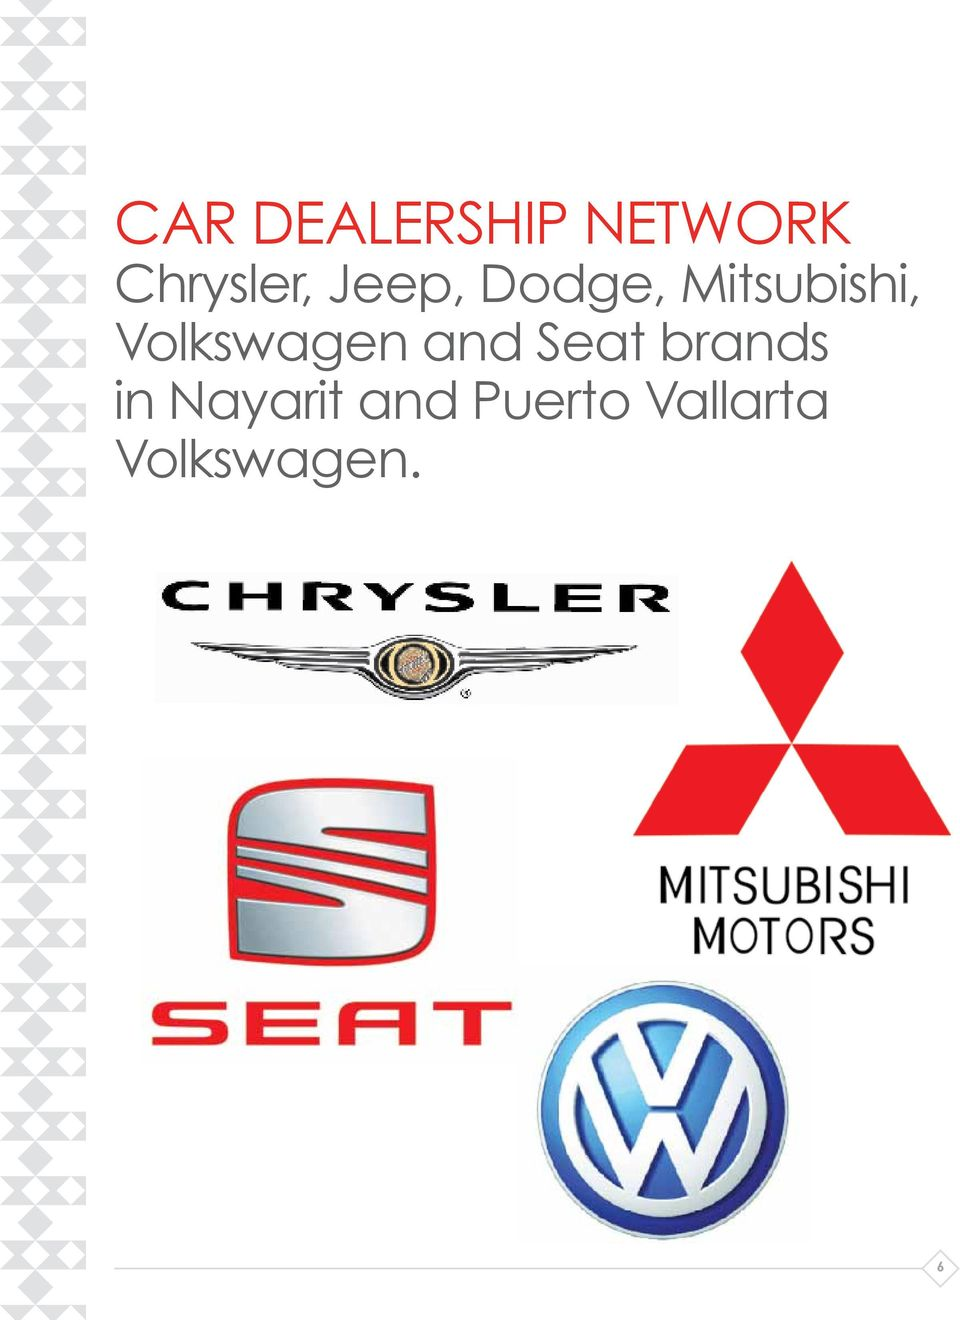 Volkswagen and Seat brands in